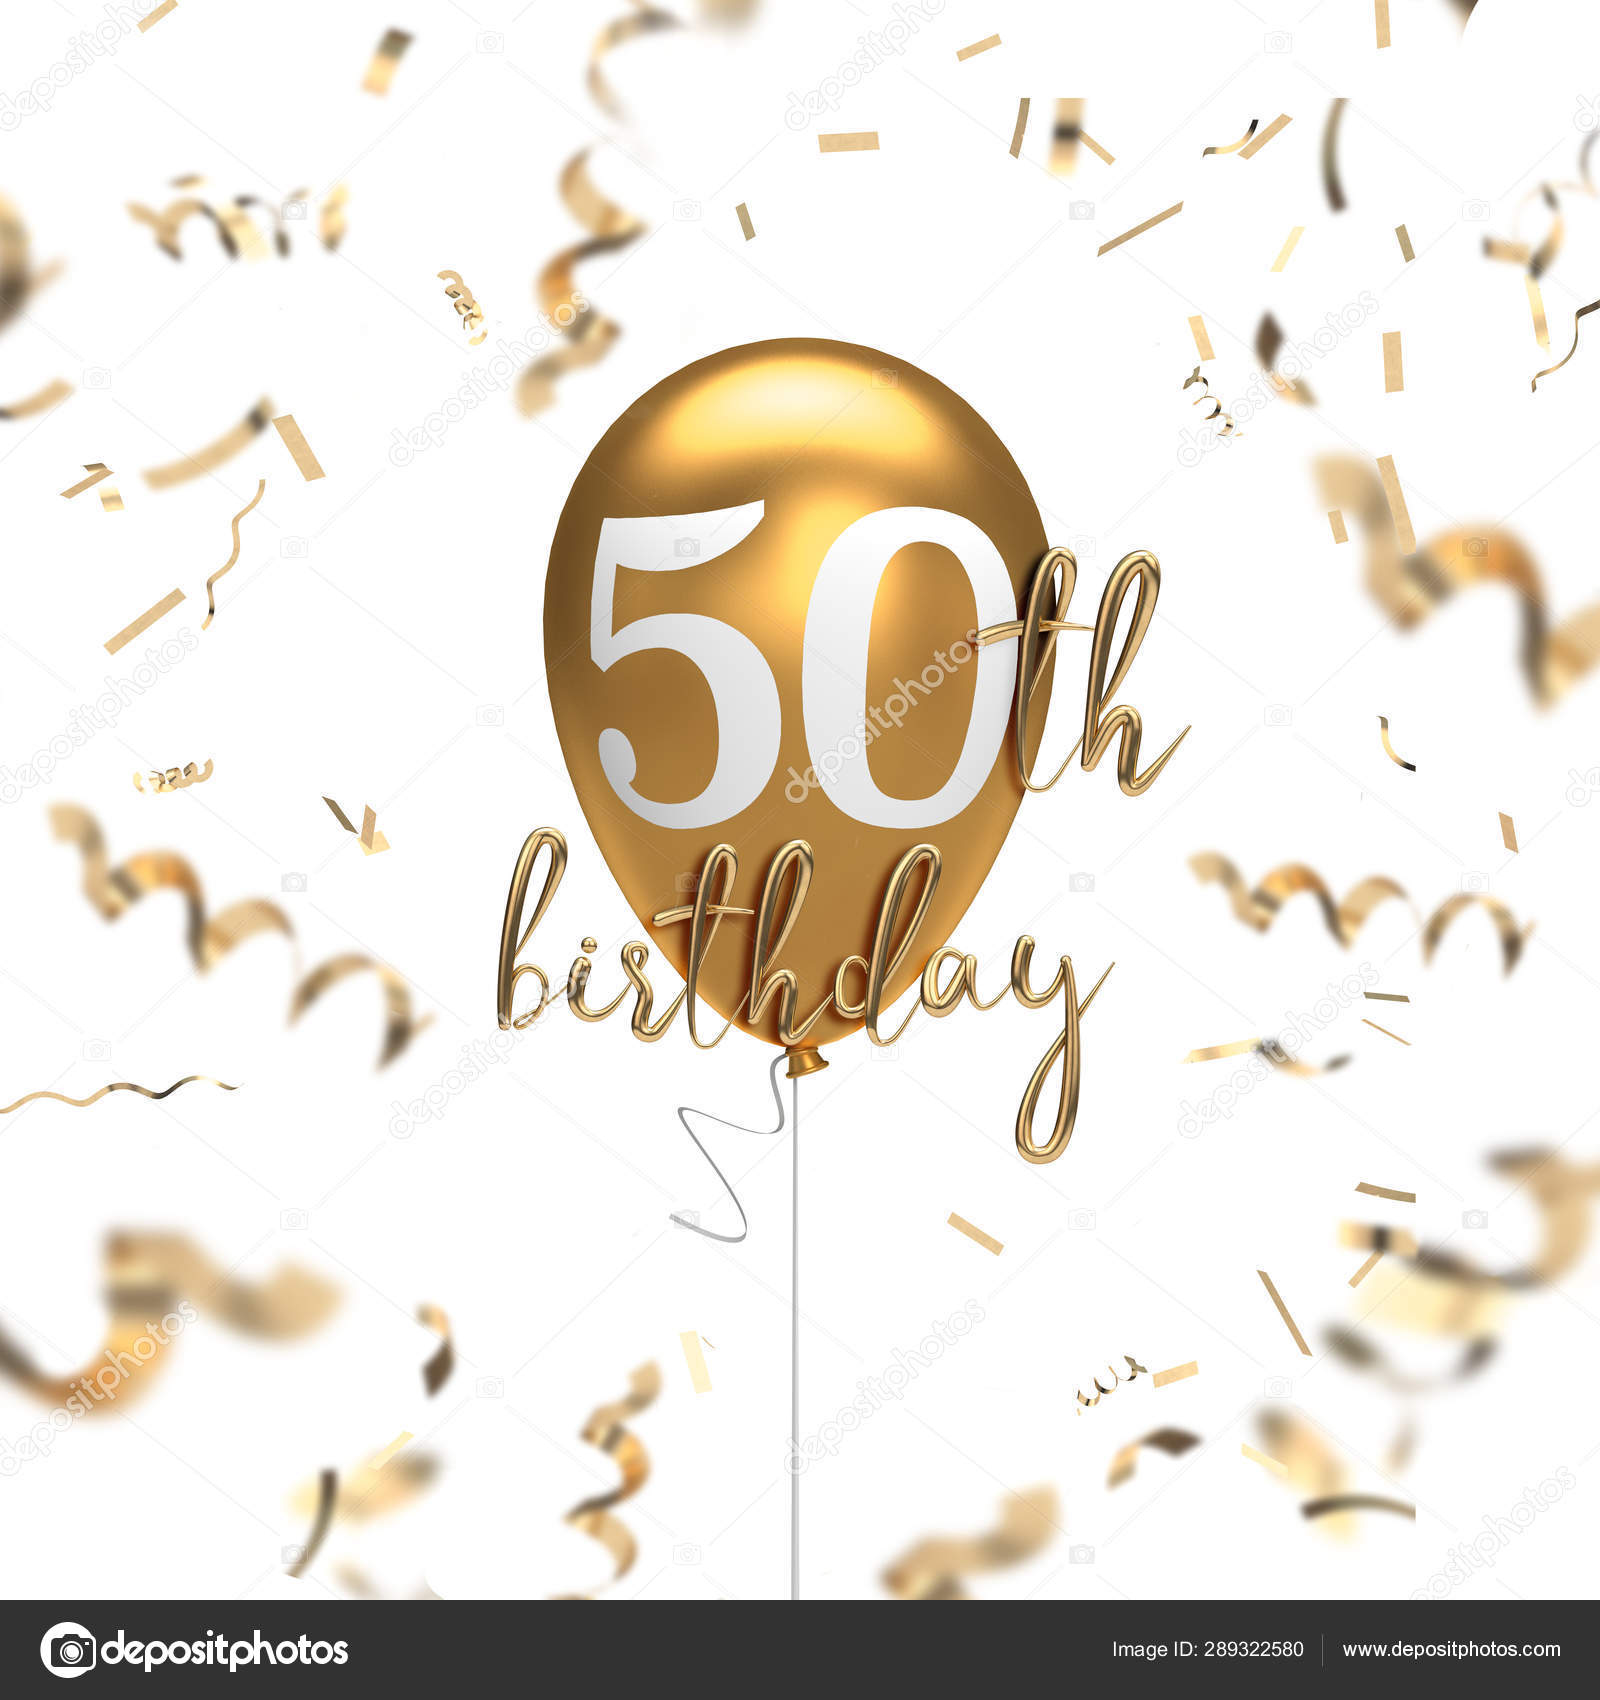 Happy 50th Birthday Gold Balloon Greeting Background 3d Renderi Stock Photo Image By C Inkdropcreative 289322580